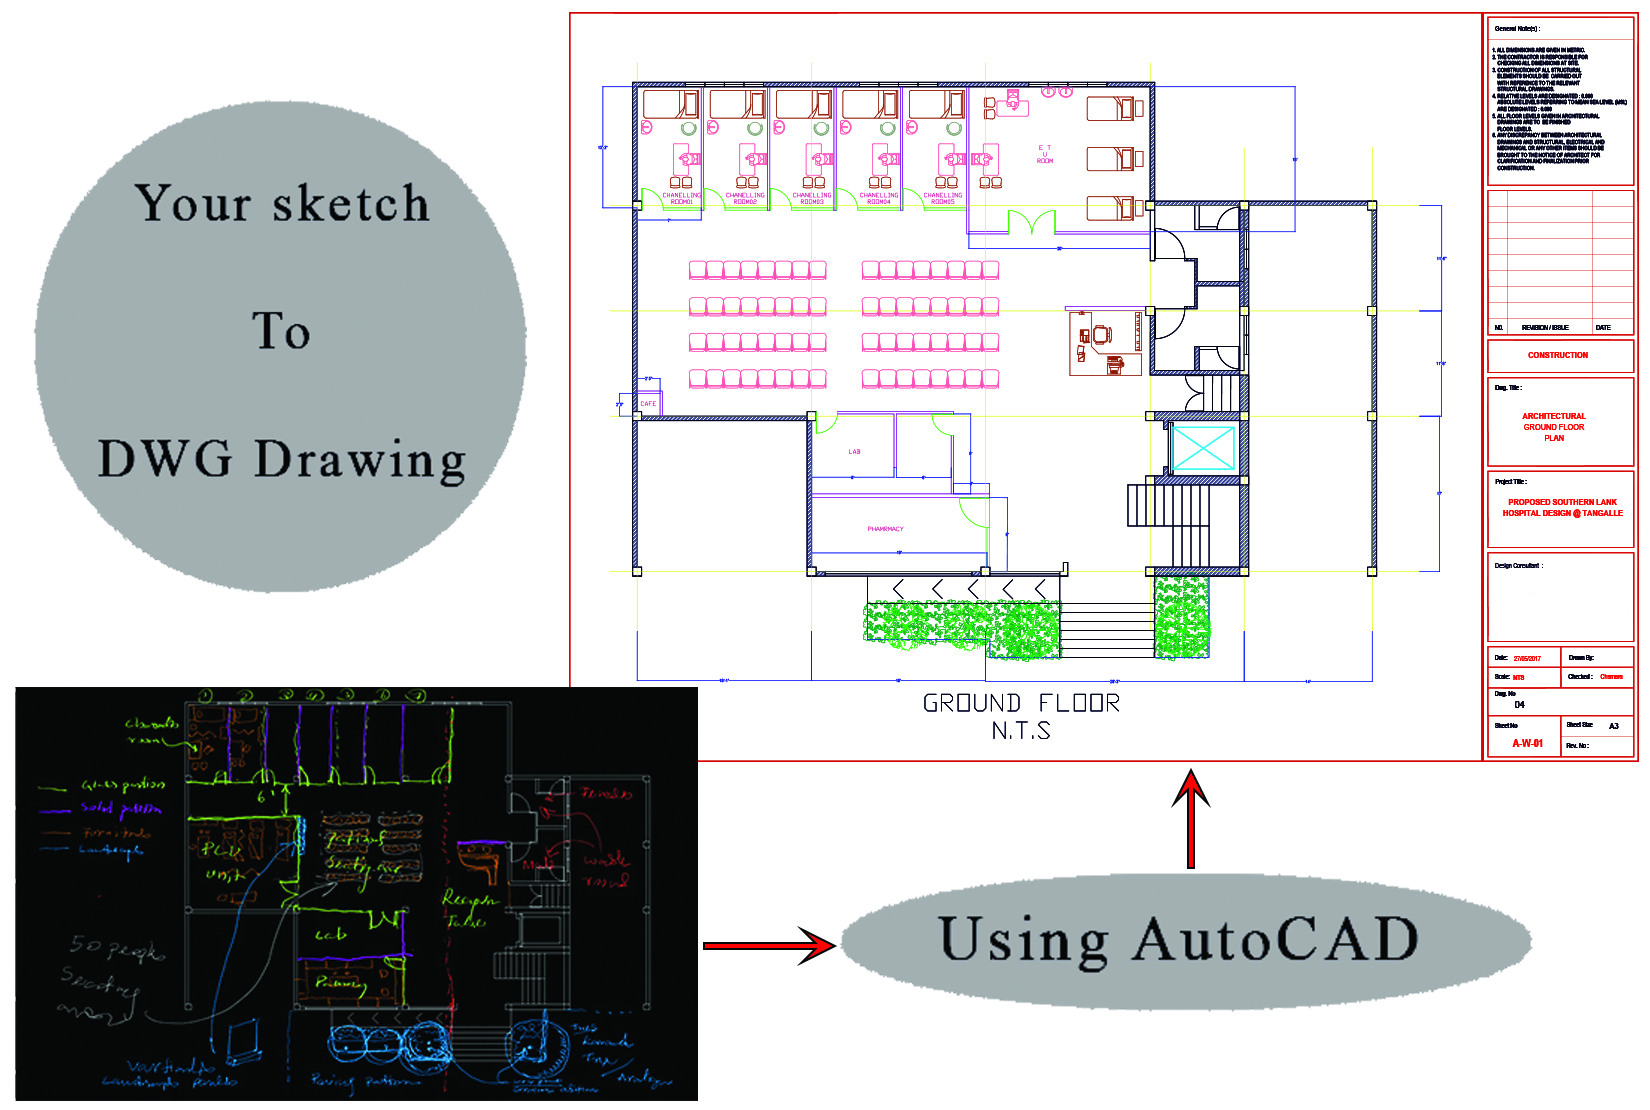 I will draw 2D architecture floor plan and landscape plan in AutoCAD drawings